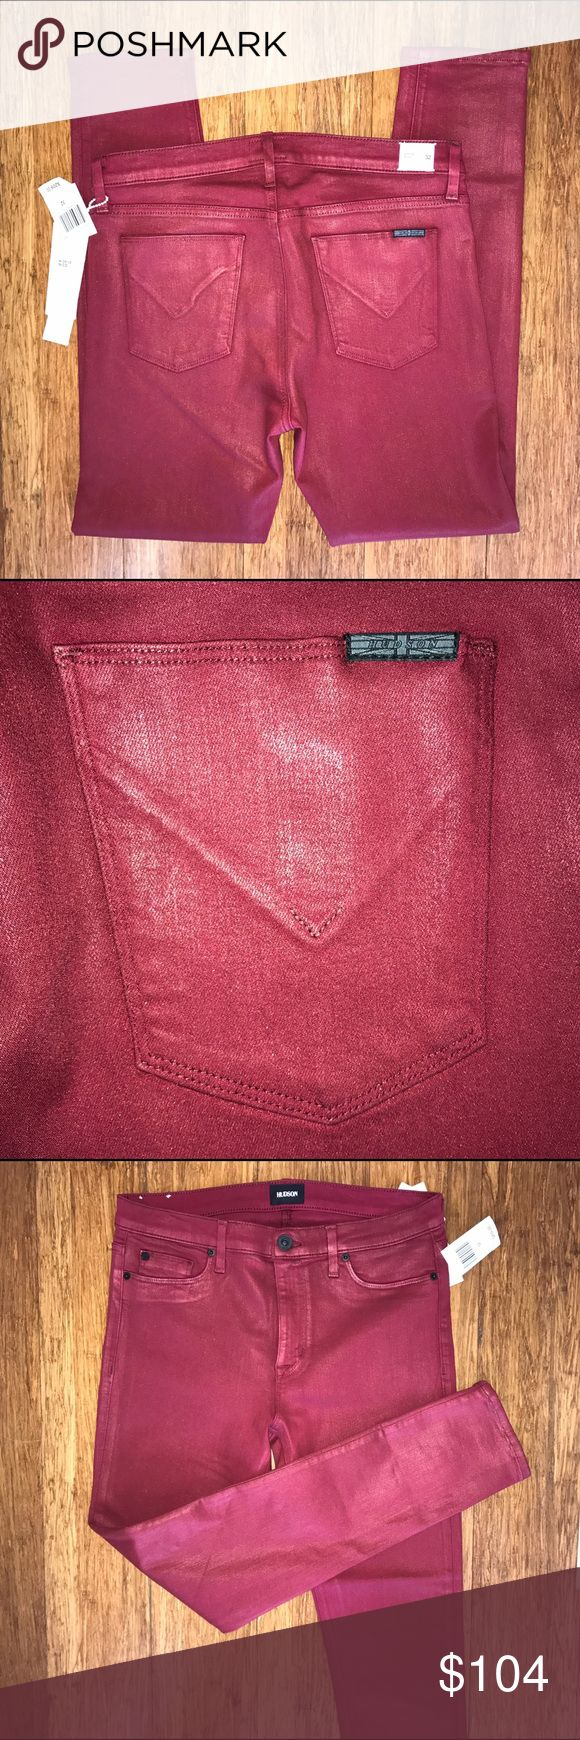 """💥Hudson Nico Midrise Superskinny sz 32 Amber Direct from warehouse, first quality. Hudson Nico in Mystic Amber is a midrise super skinny that includes a 9"""" front rise, a 10"""" leg opening and a 28"""" inseam.             Hudson calls the color """"amber"""" but it looks cranberry or maroon. Last photo is same jeans in another color to give an idea of fit.  ·    A NEW POWER STRETCH WITH A DEFINED TWILL AND SUPER SOFT HAND FEEL. 43% VISCOSE, 33% COTTON, 17% TENCEL, 5% POLYESTER, 2% ELASTANE ·    MIDRISE…"""